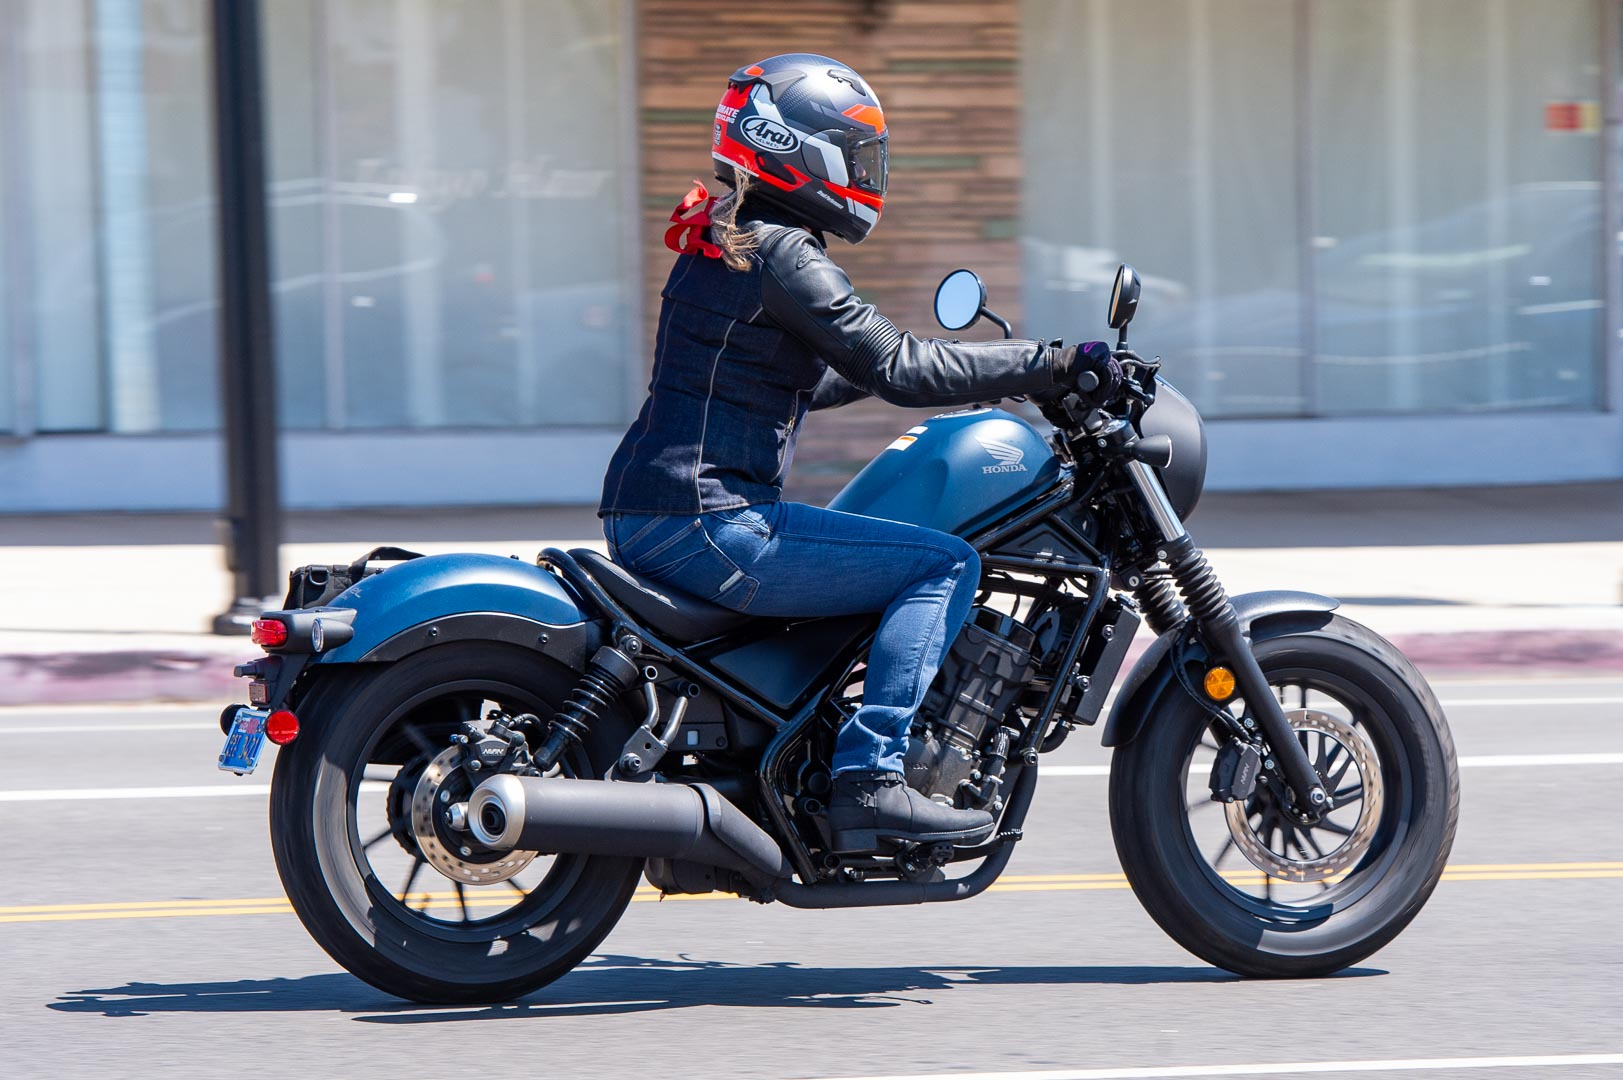 2020 Honda Rebel 300 Review - Urban Motorcycle